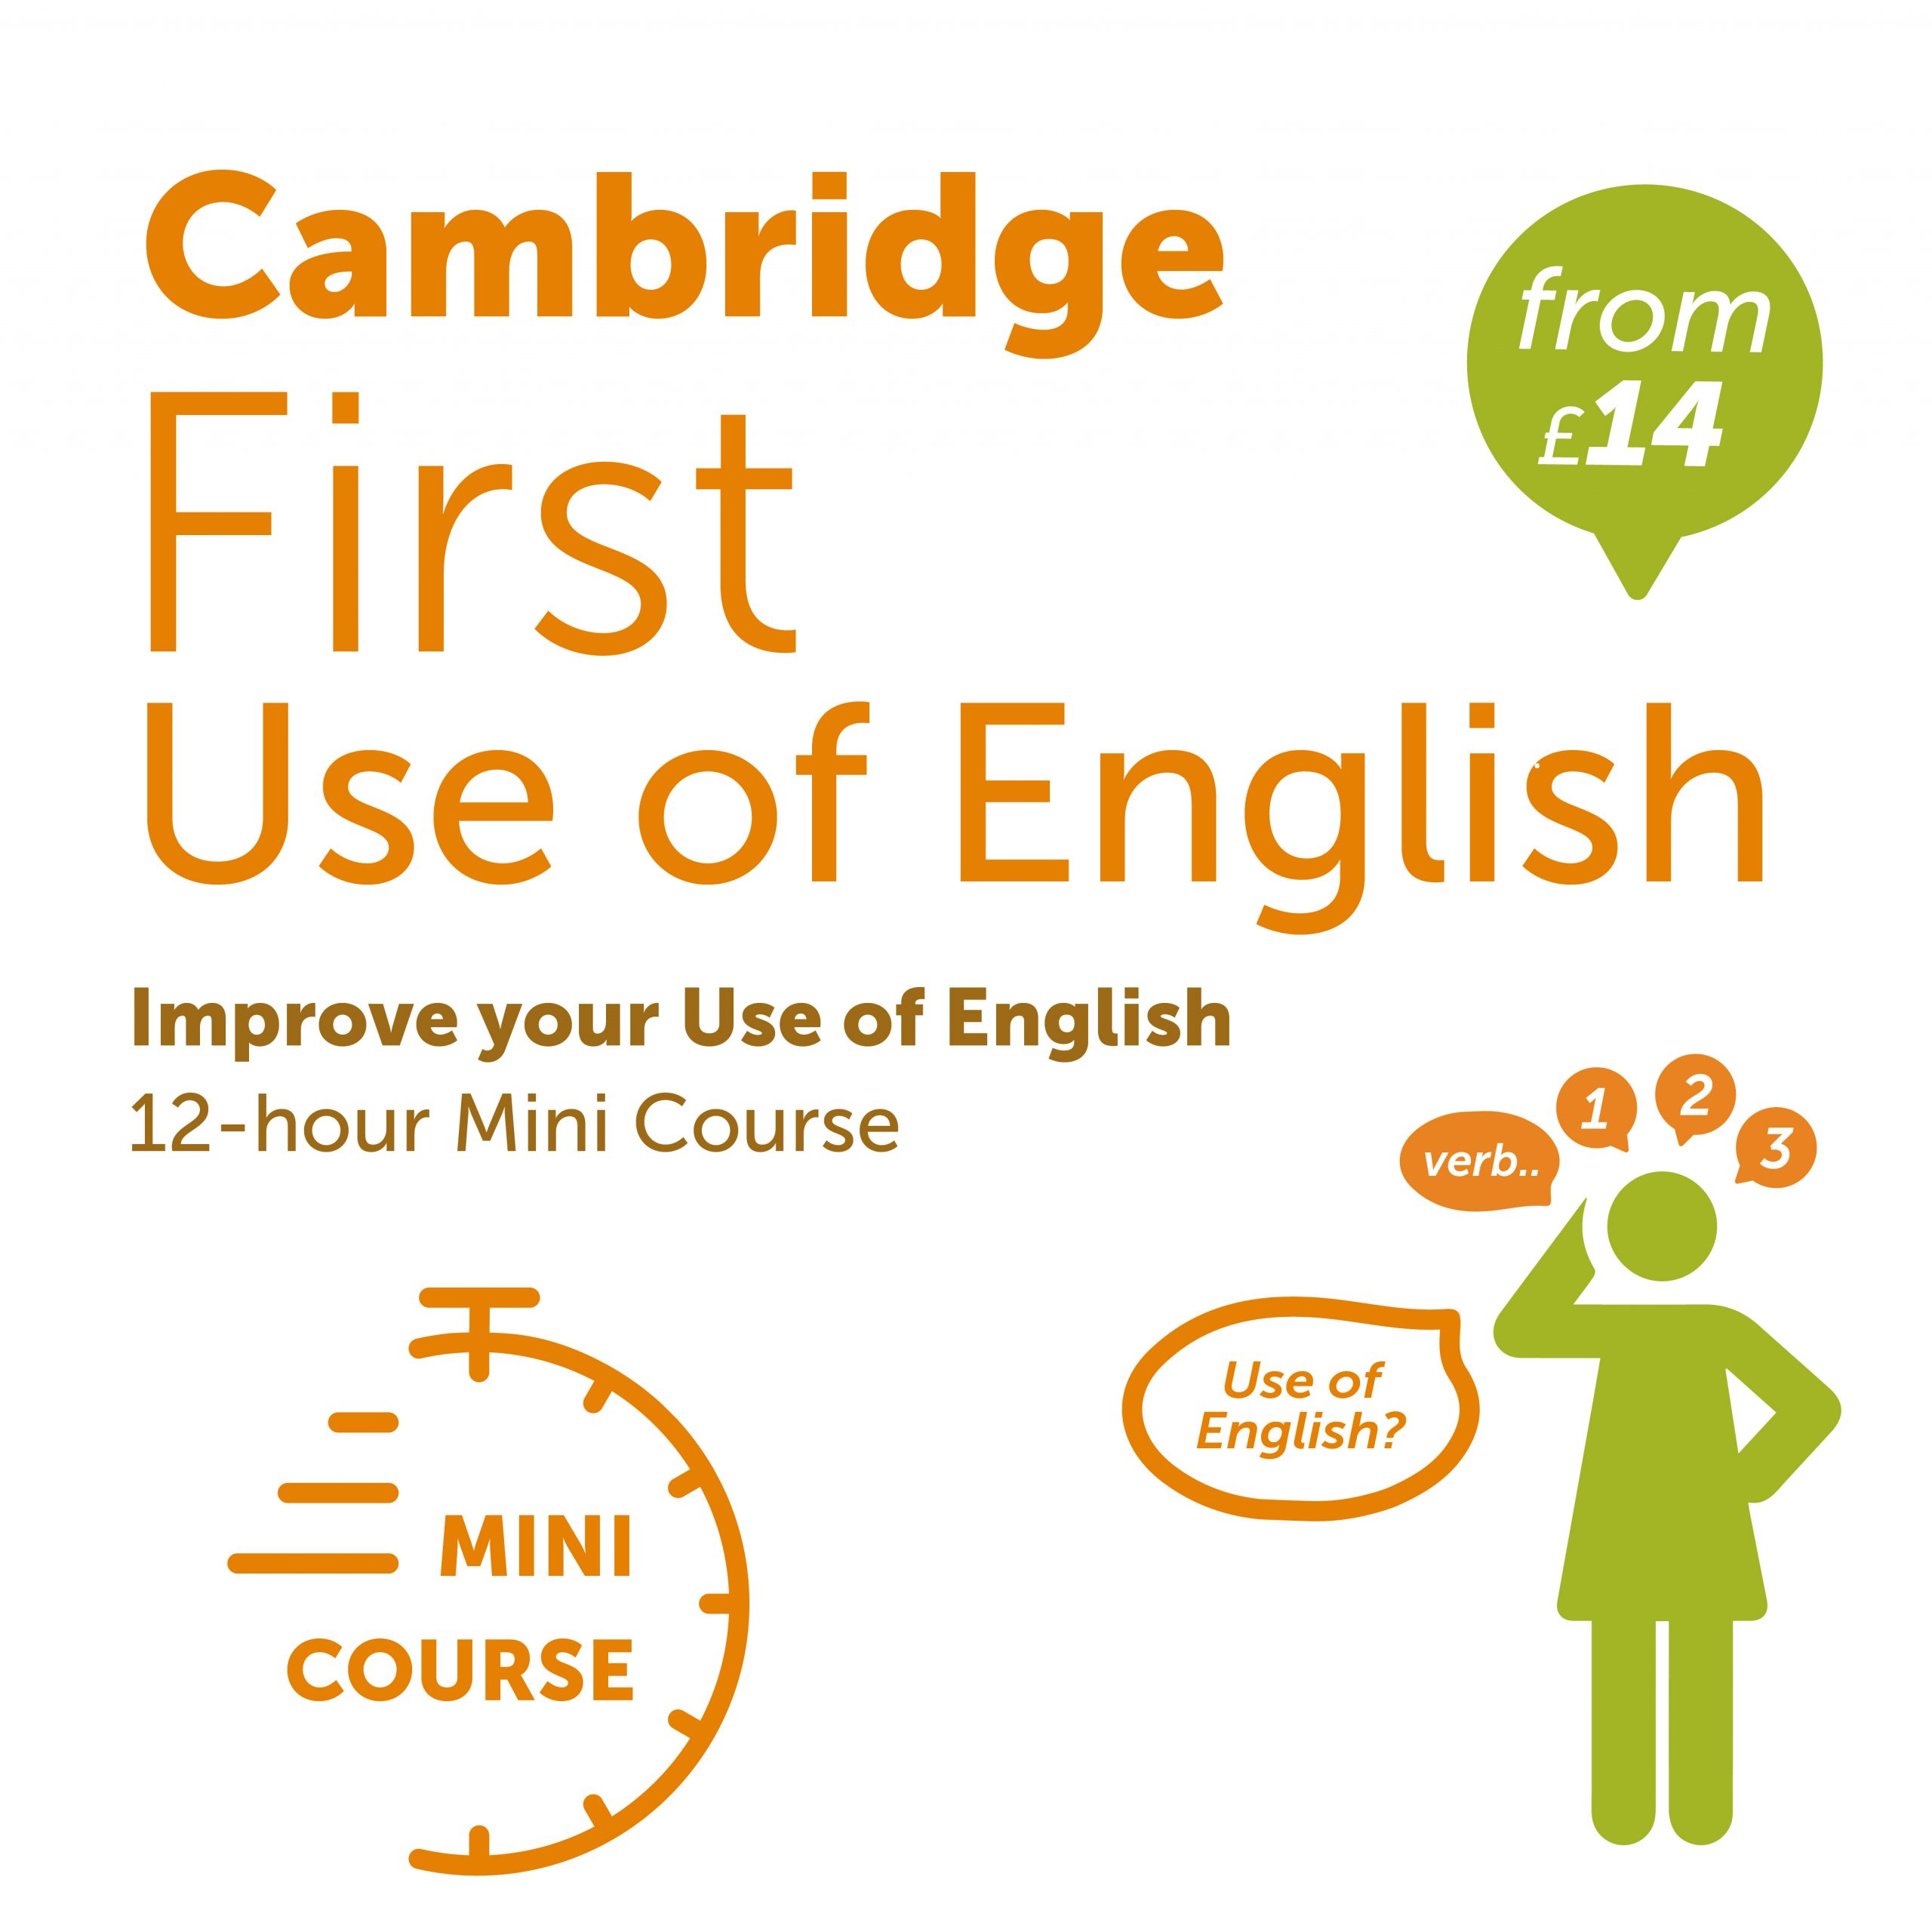 Cambridge First Use of English Online Logo